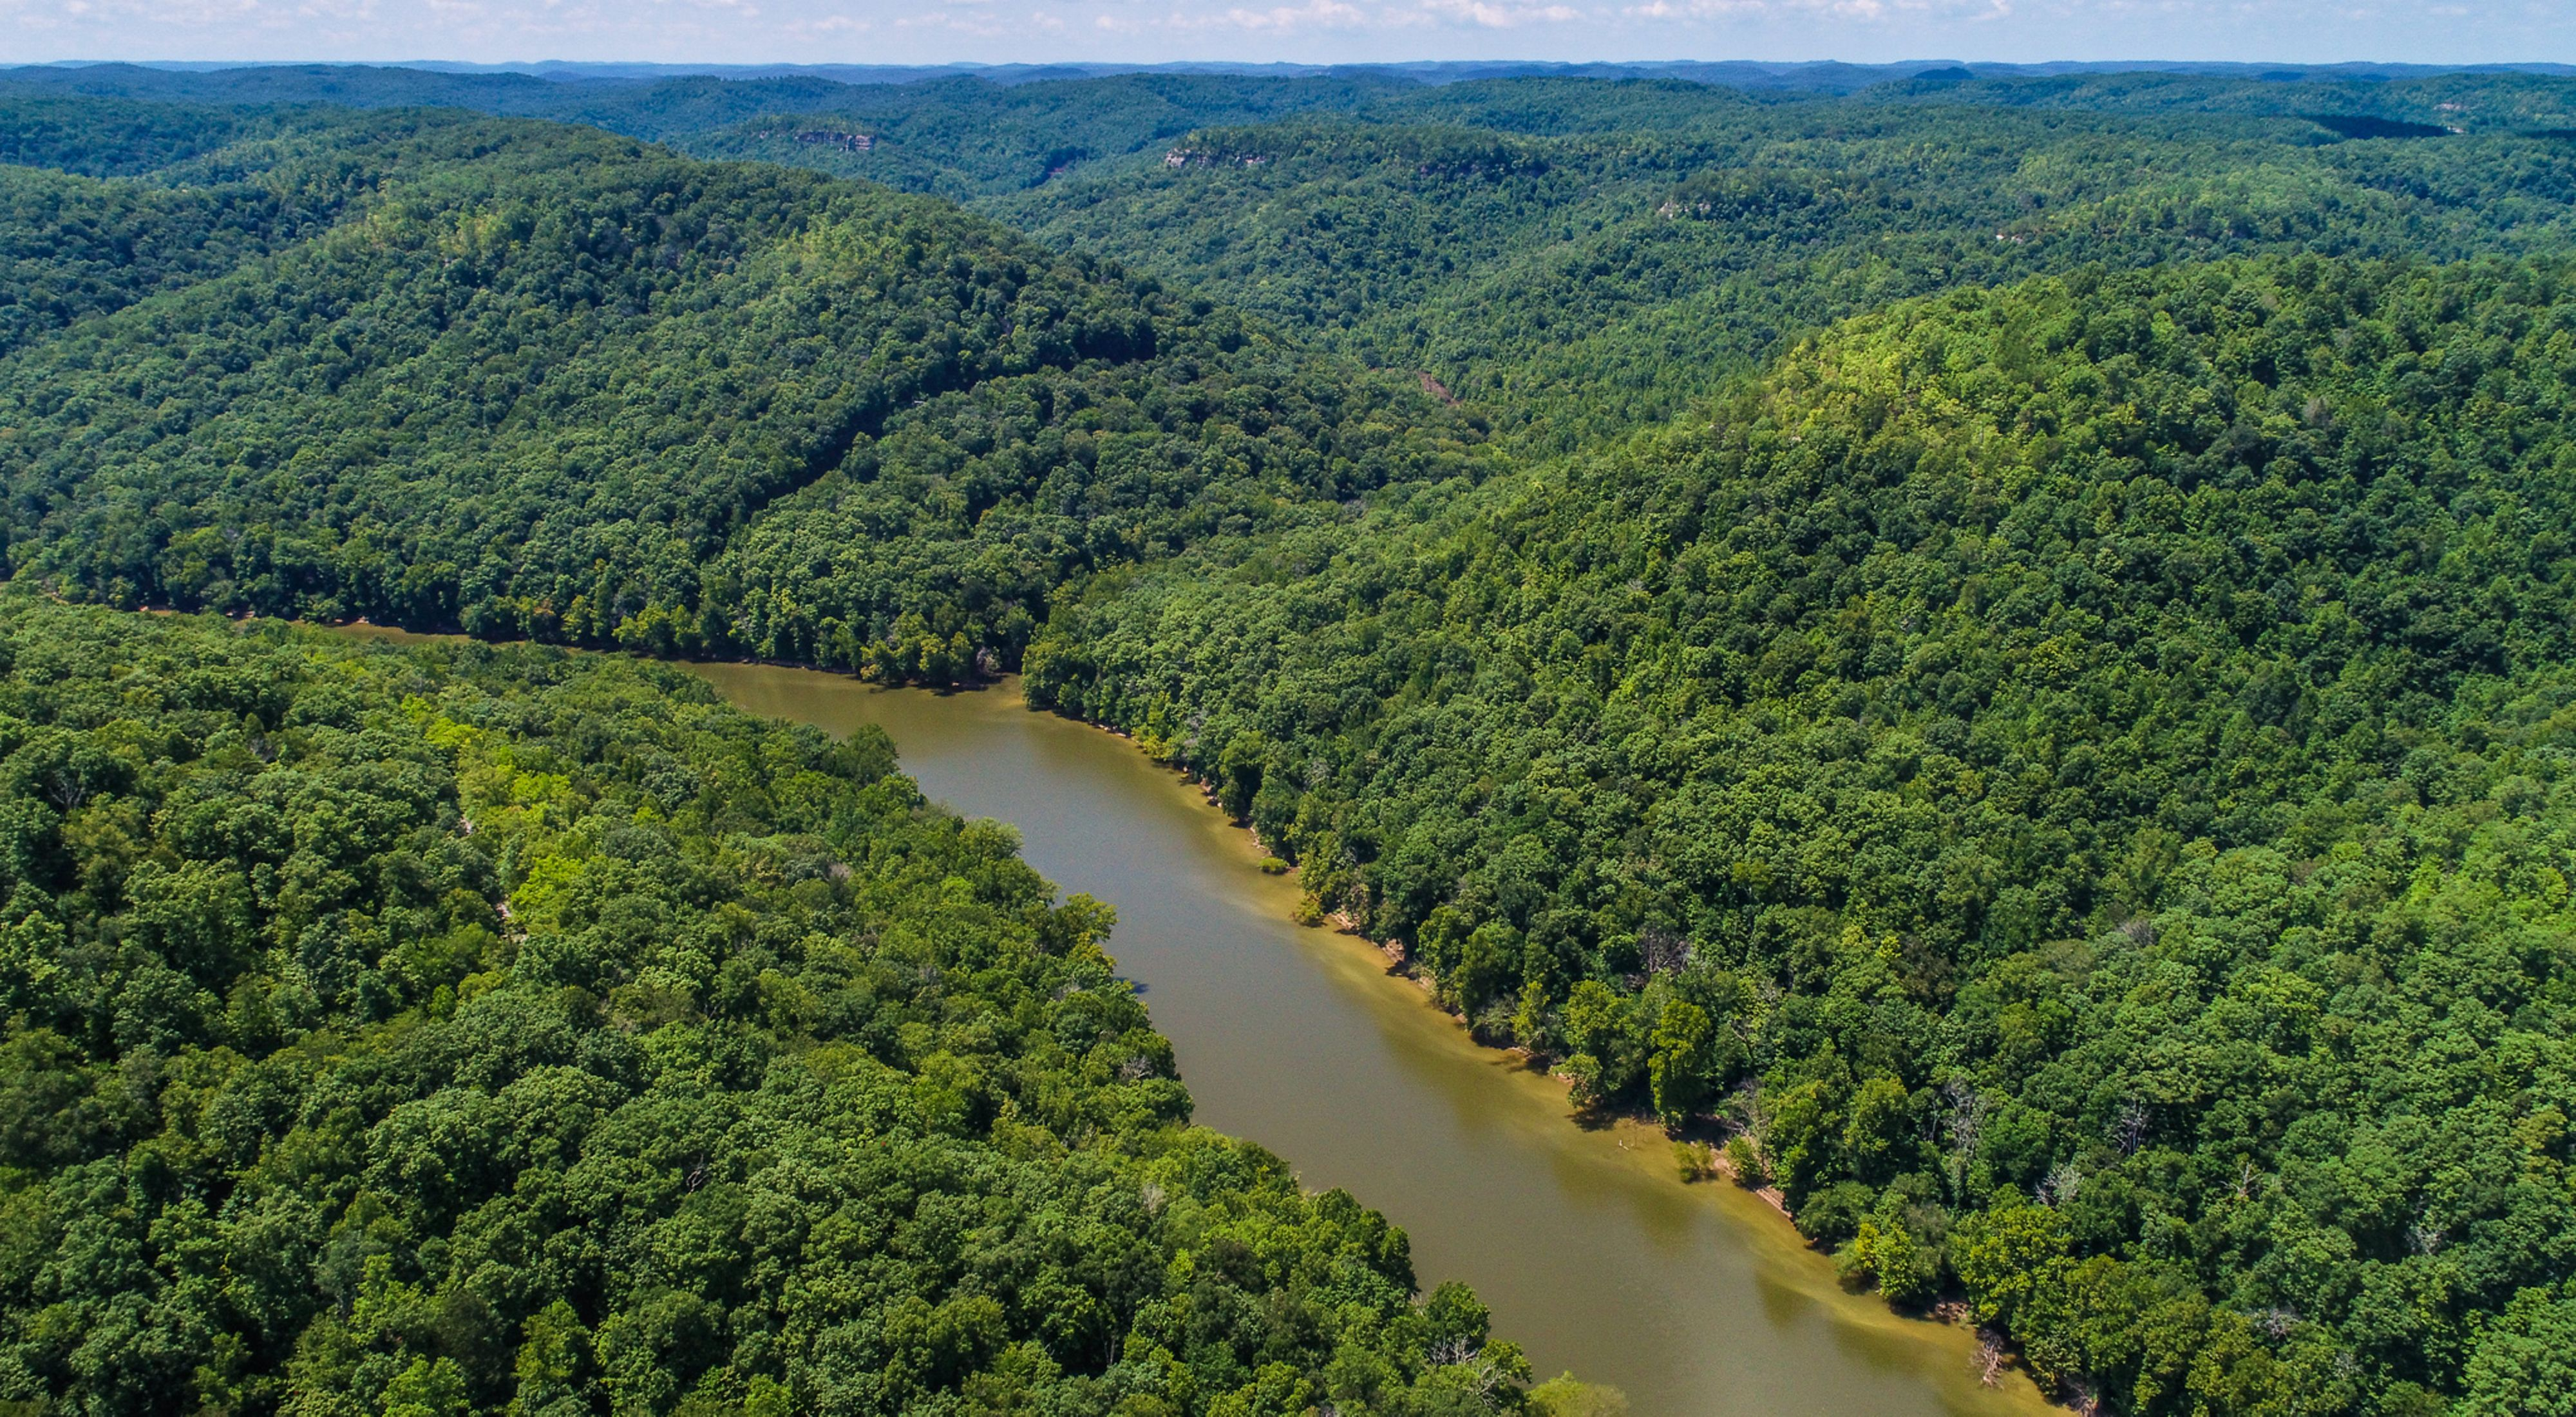 Aerial view of the Big South Fork River in Kentucky with dense forests along its banks.